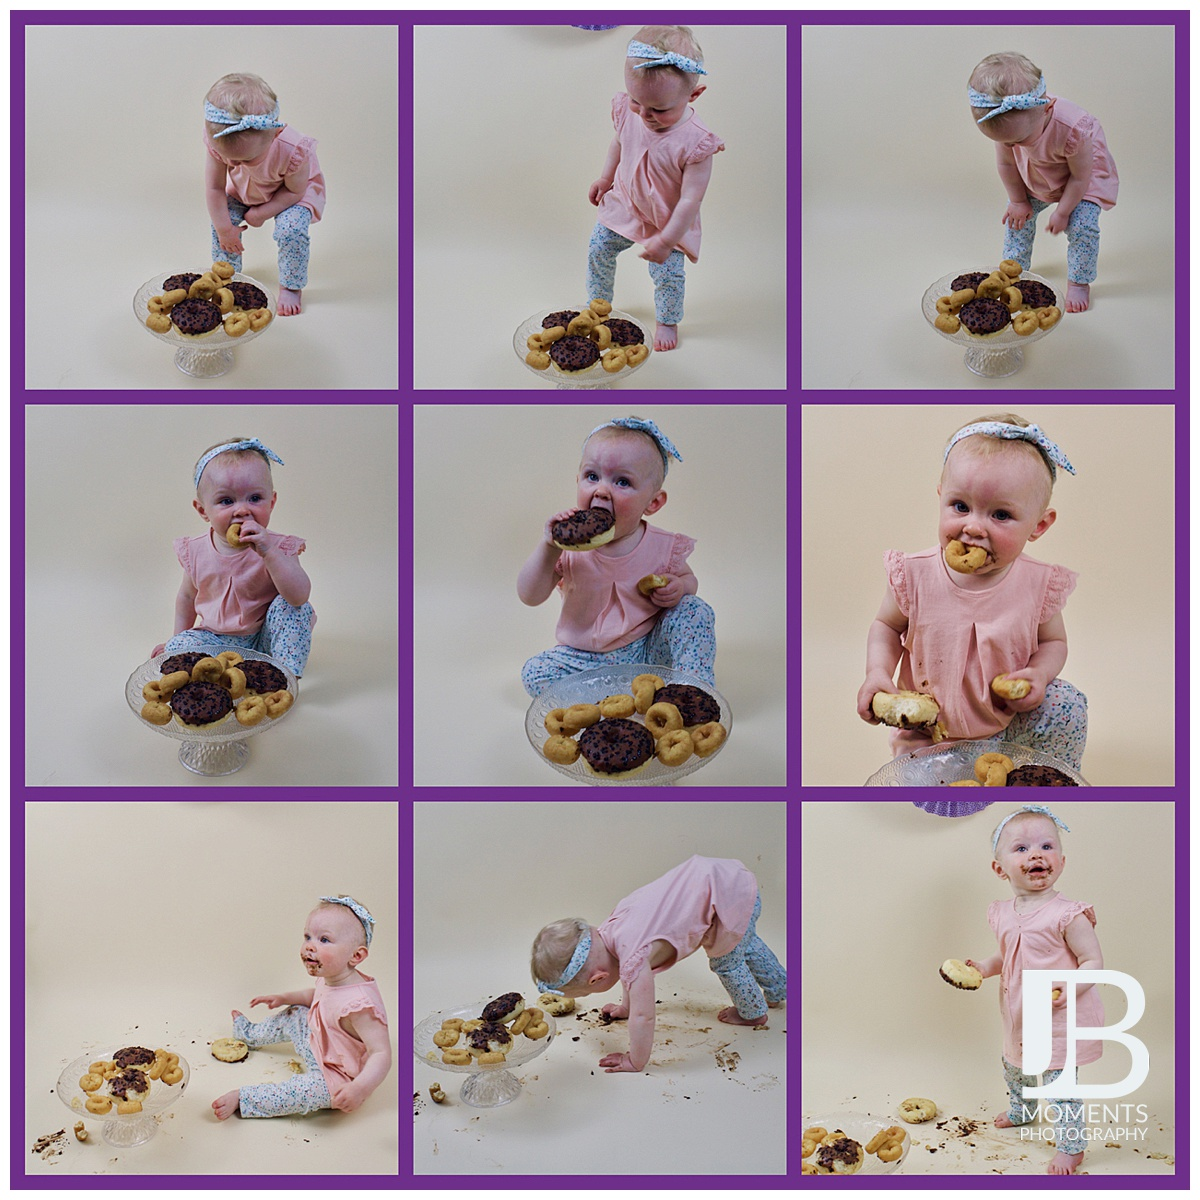 Child photographer in Stirling - JB Moments Photography